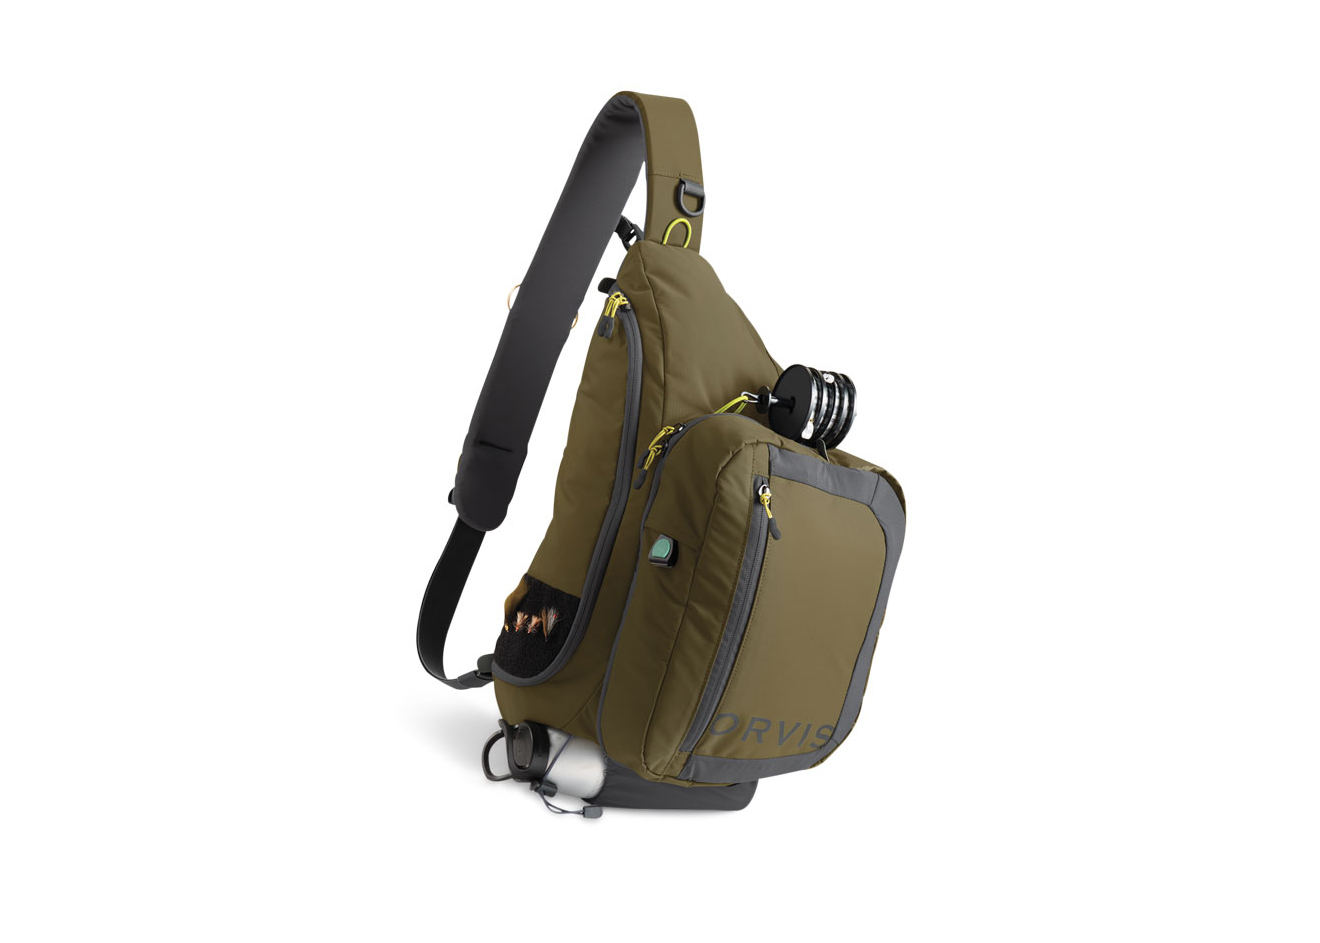 //www.flyfisherman.com/files/2015-fly-fisherman-fathers-day-gift-guide/orvisbackpack_0.jpg